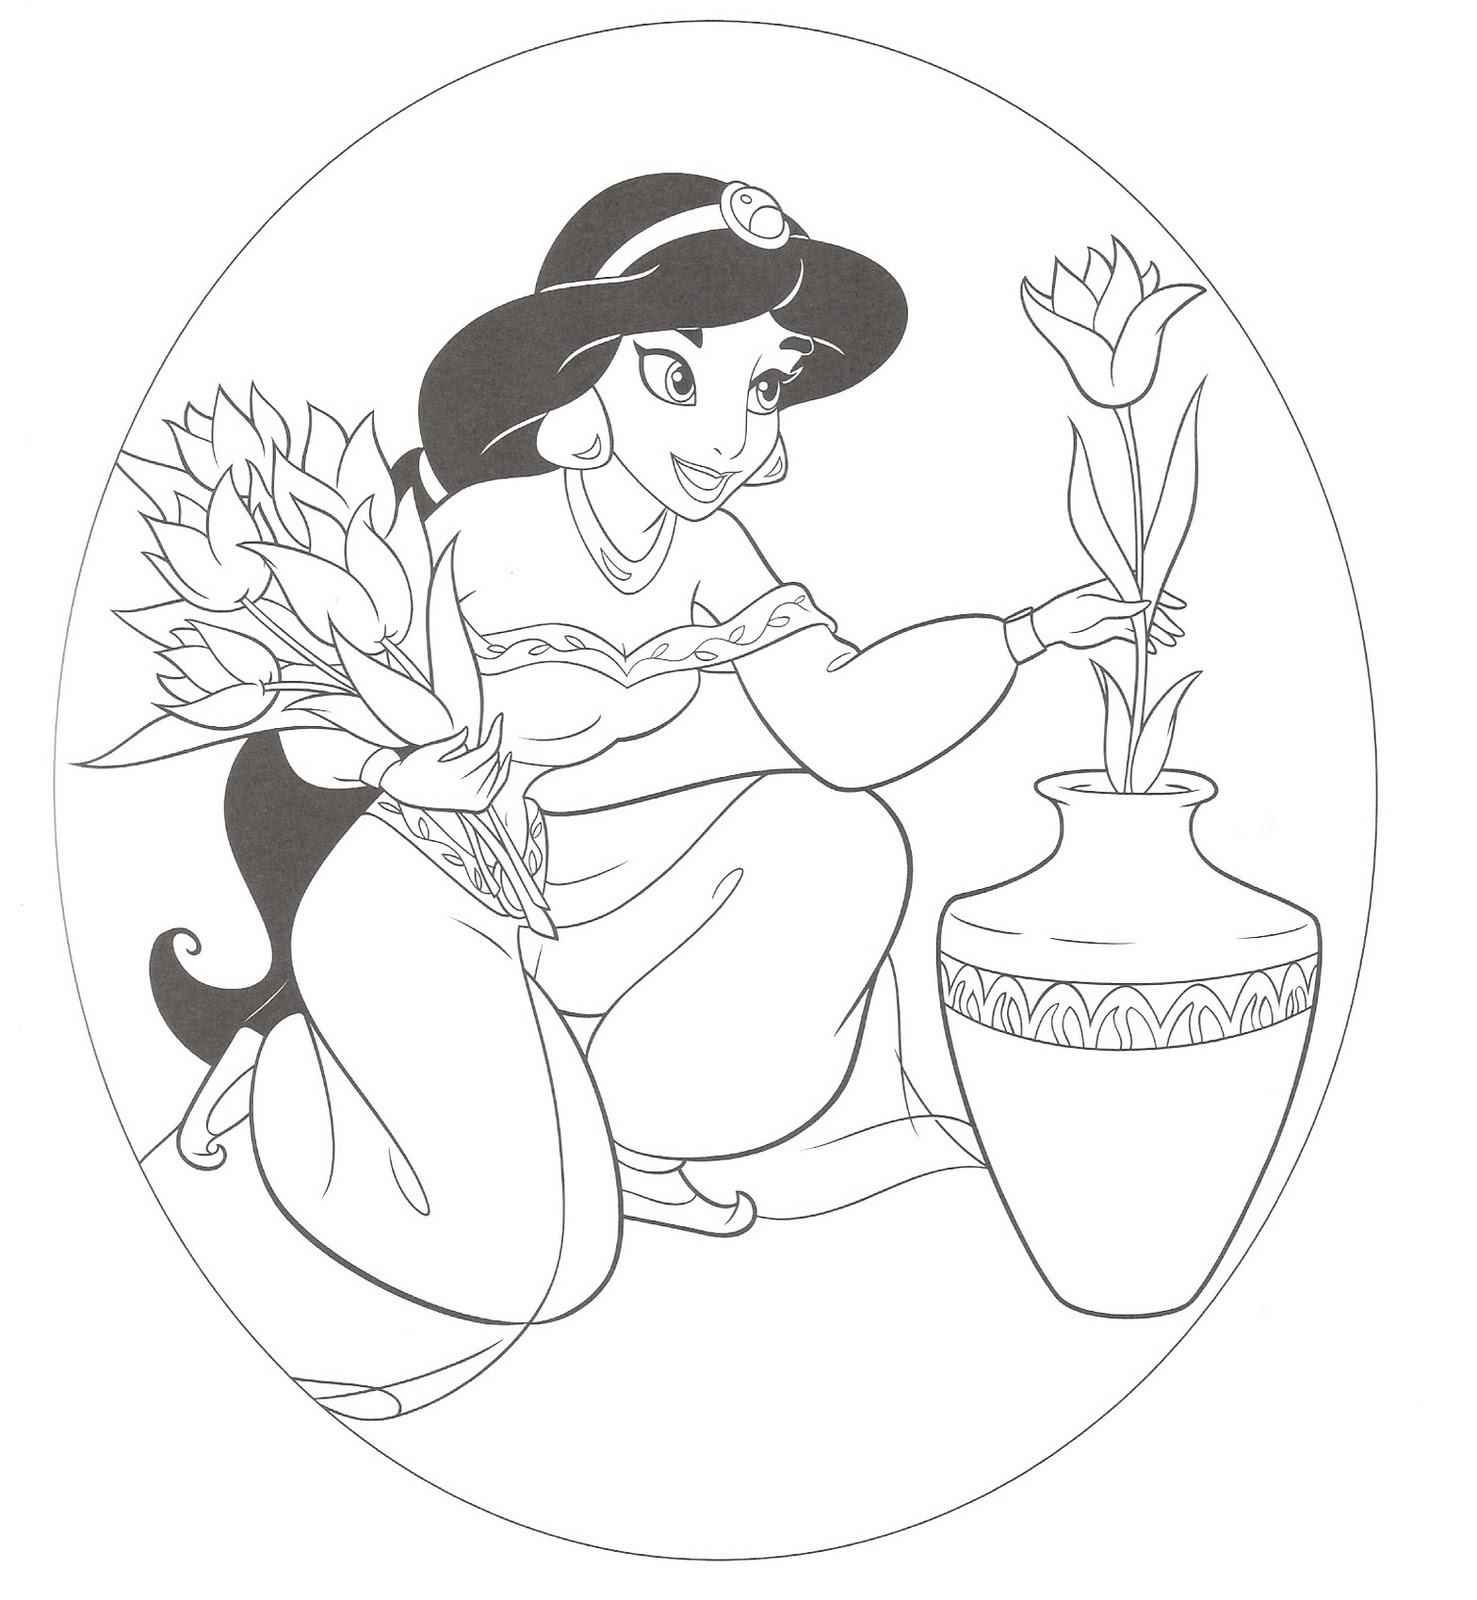 Disney Princess Coloring Pages For Kids Coloring Pages Of The Princess Free Coloring Sheets